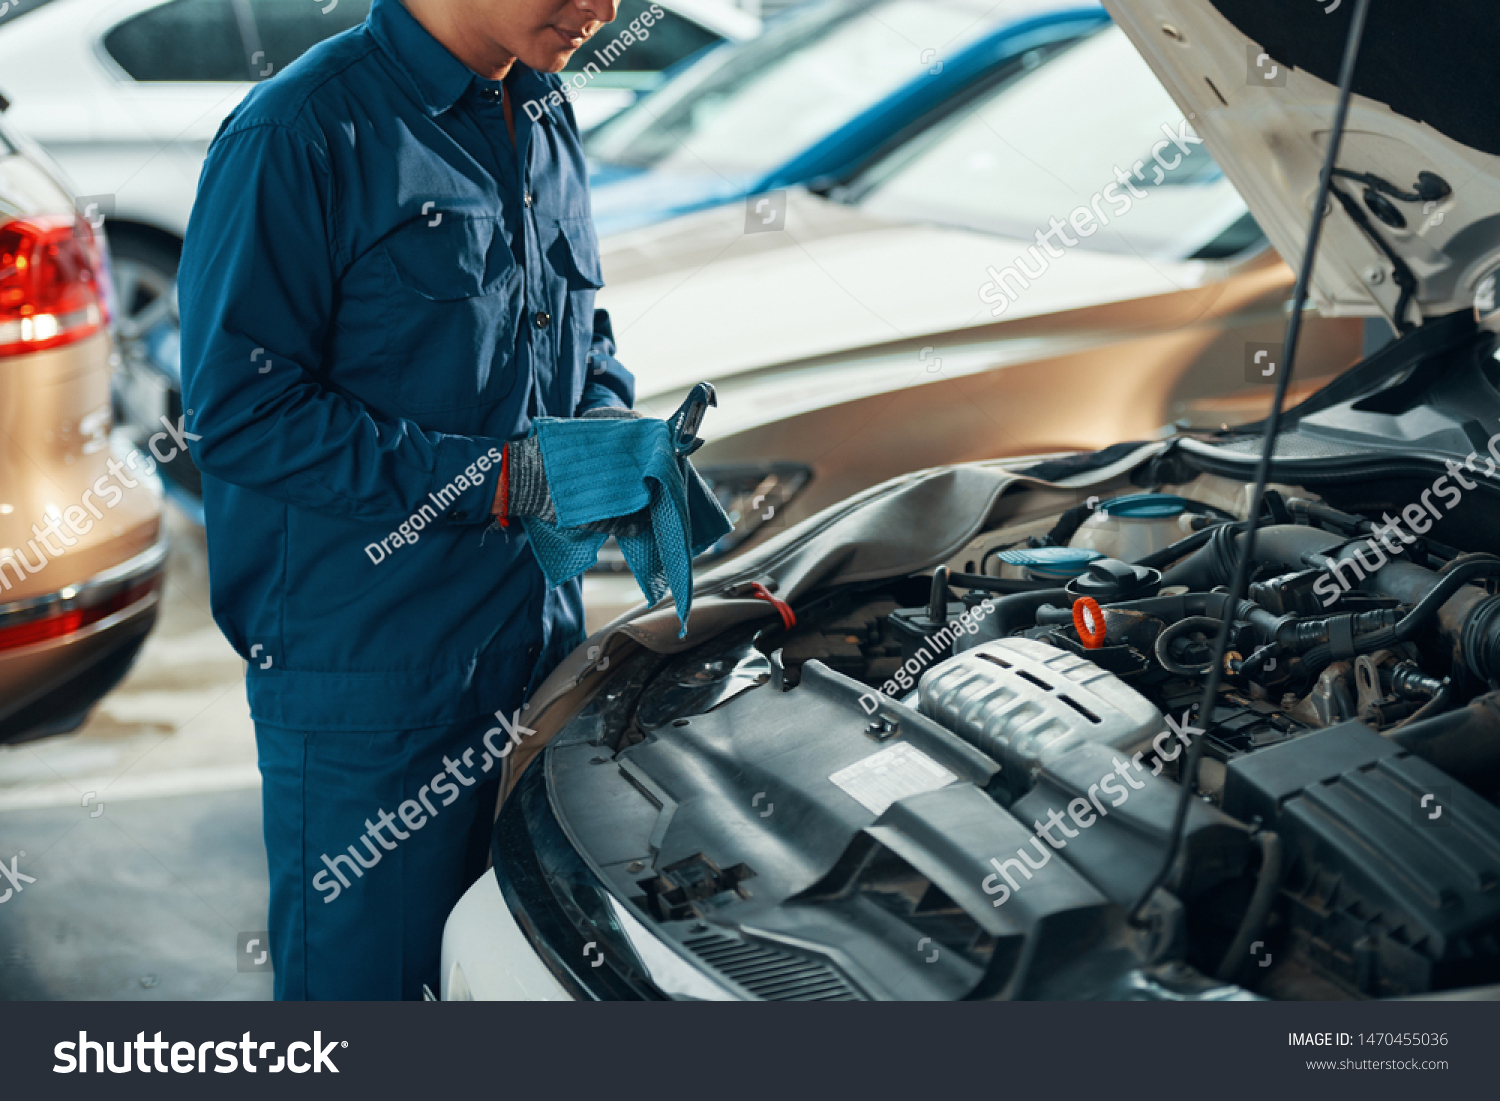 Cropped image of mechanic in uniform wiping wrench with clean cloth after working #1470455036